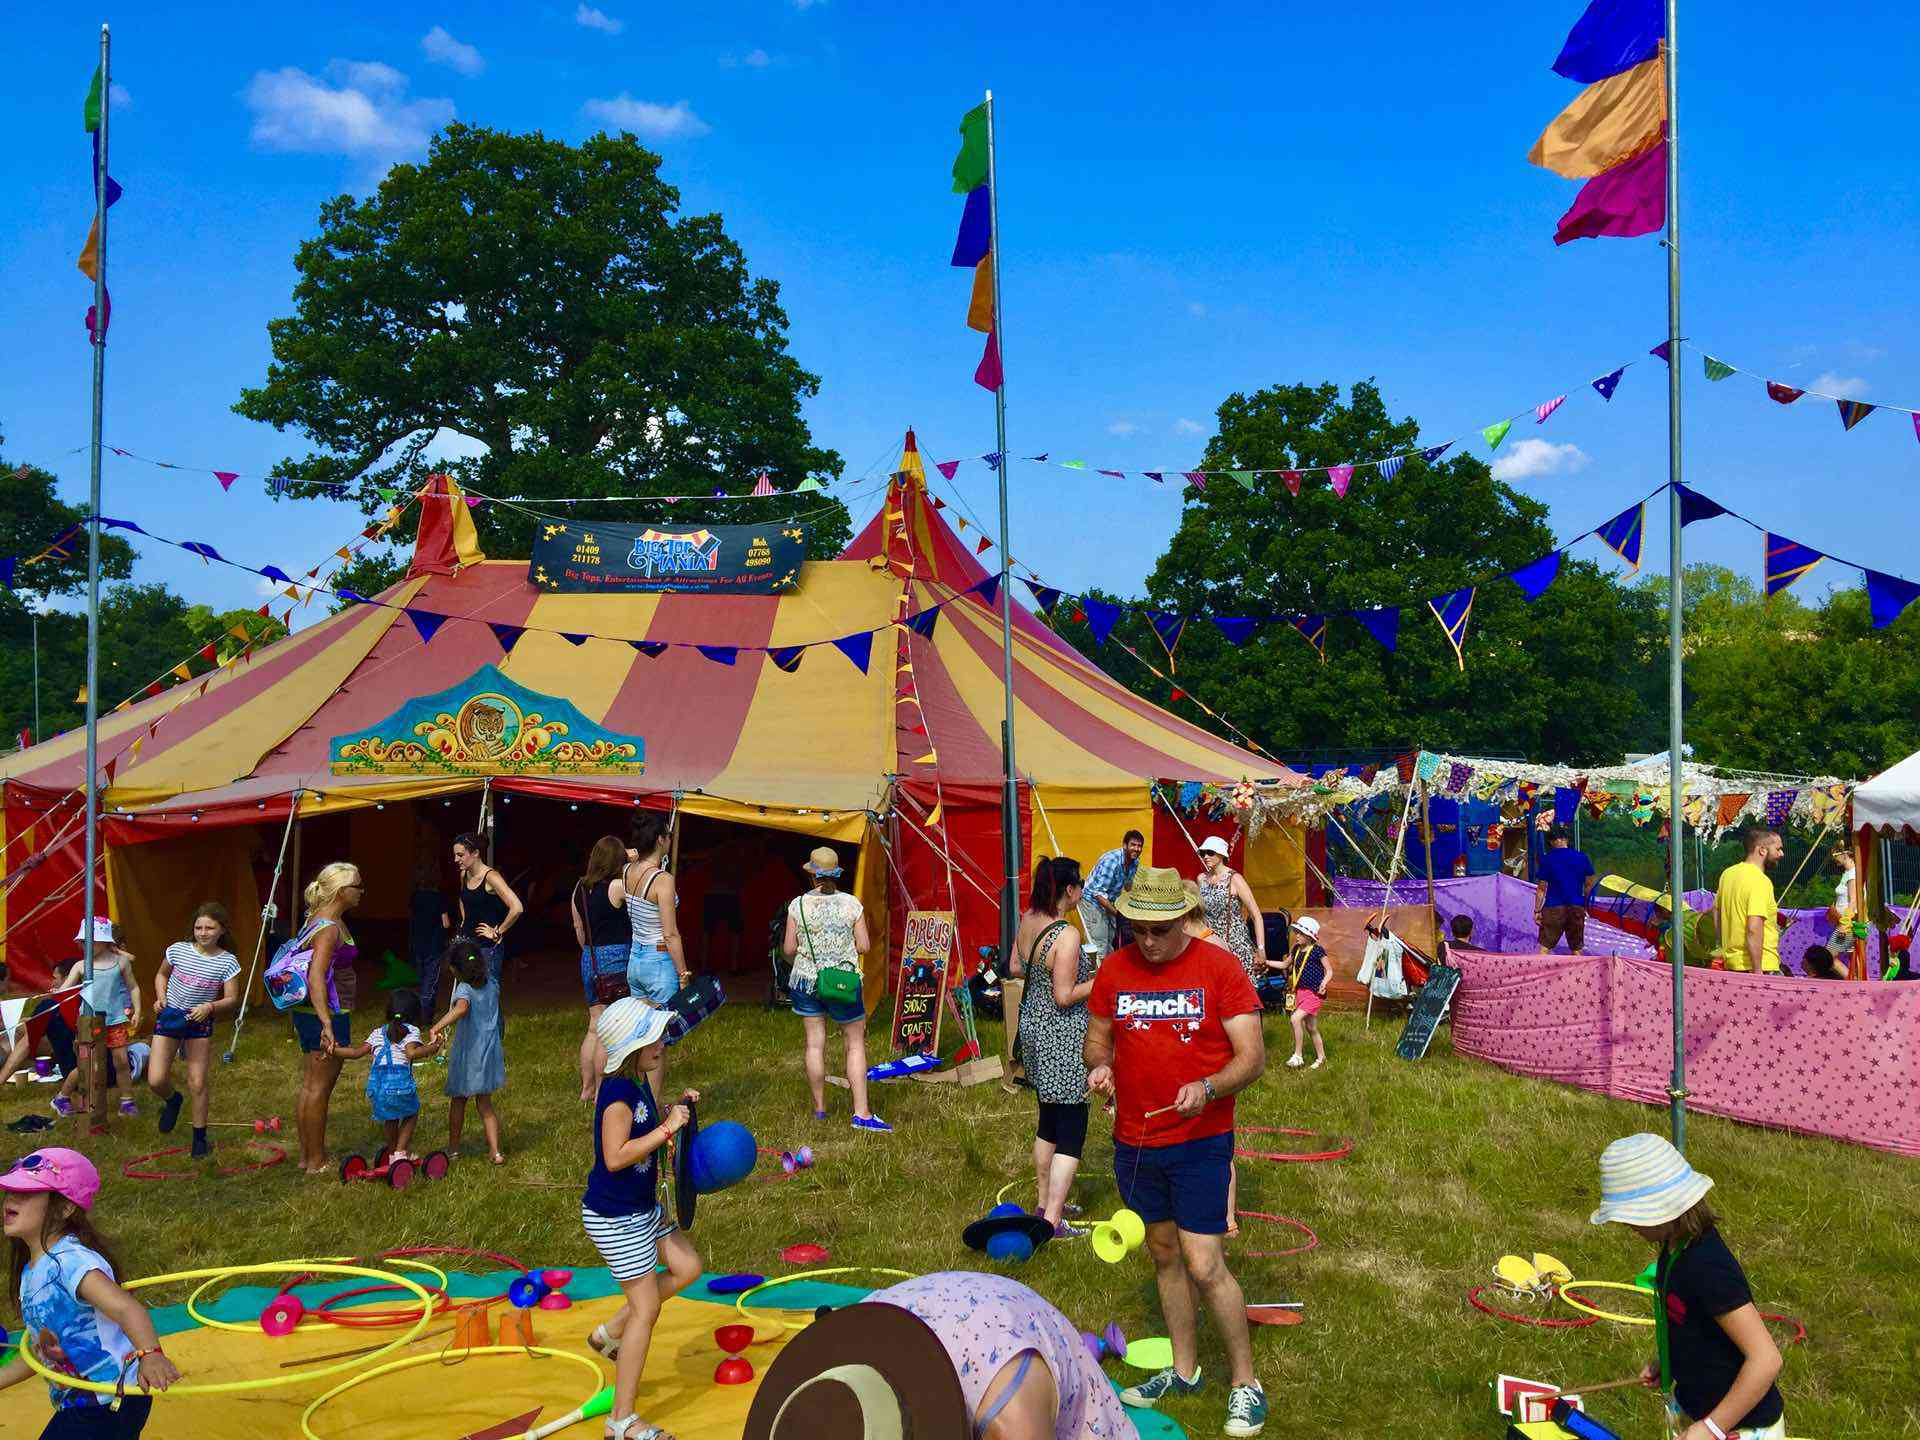 Bigtopmania play area at the Forgotten fields festival